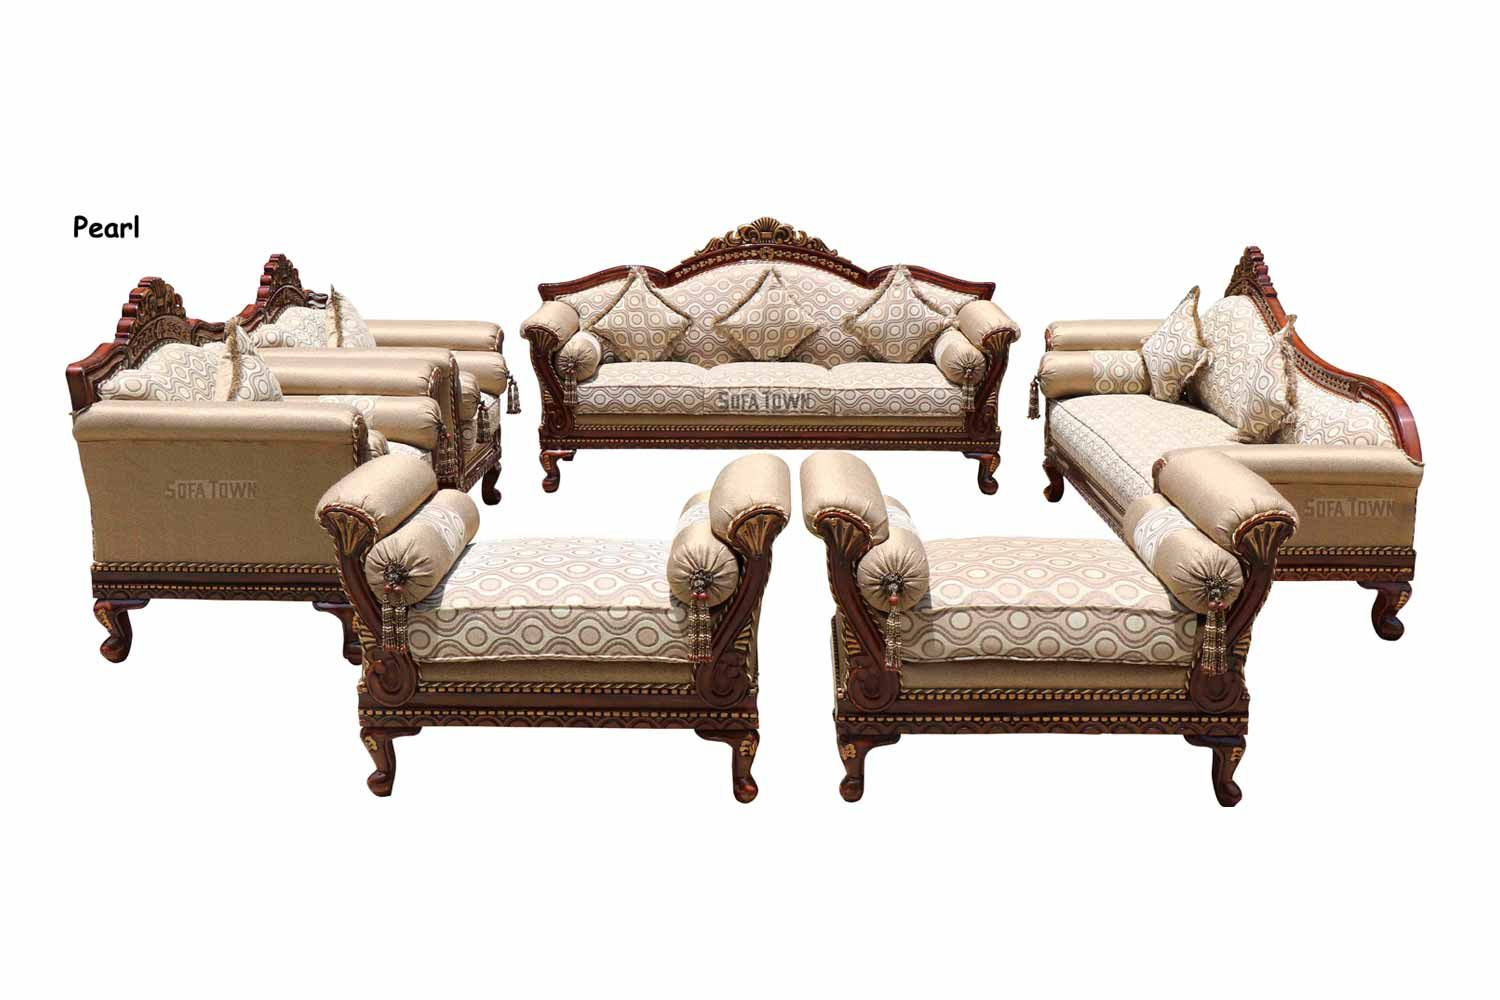 Buy Pearl Sofa Online Store Kirti Nagar Pearl Suppliers Delhi Mumbai Chennai Bangalore Pune Sofa Online Luxury Furniture Sofa Wooden Sofa Designs